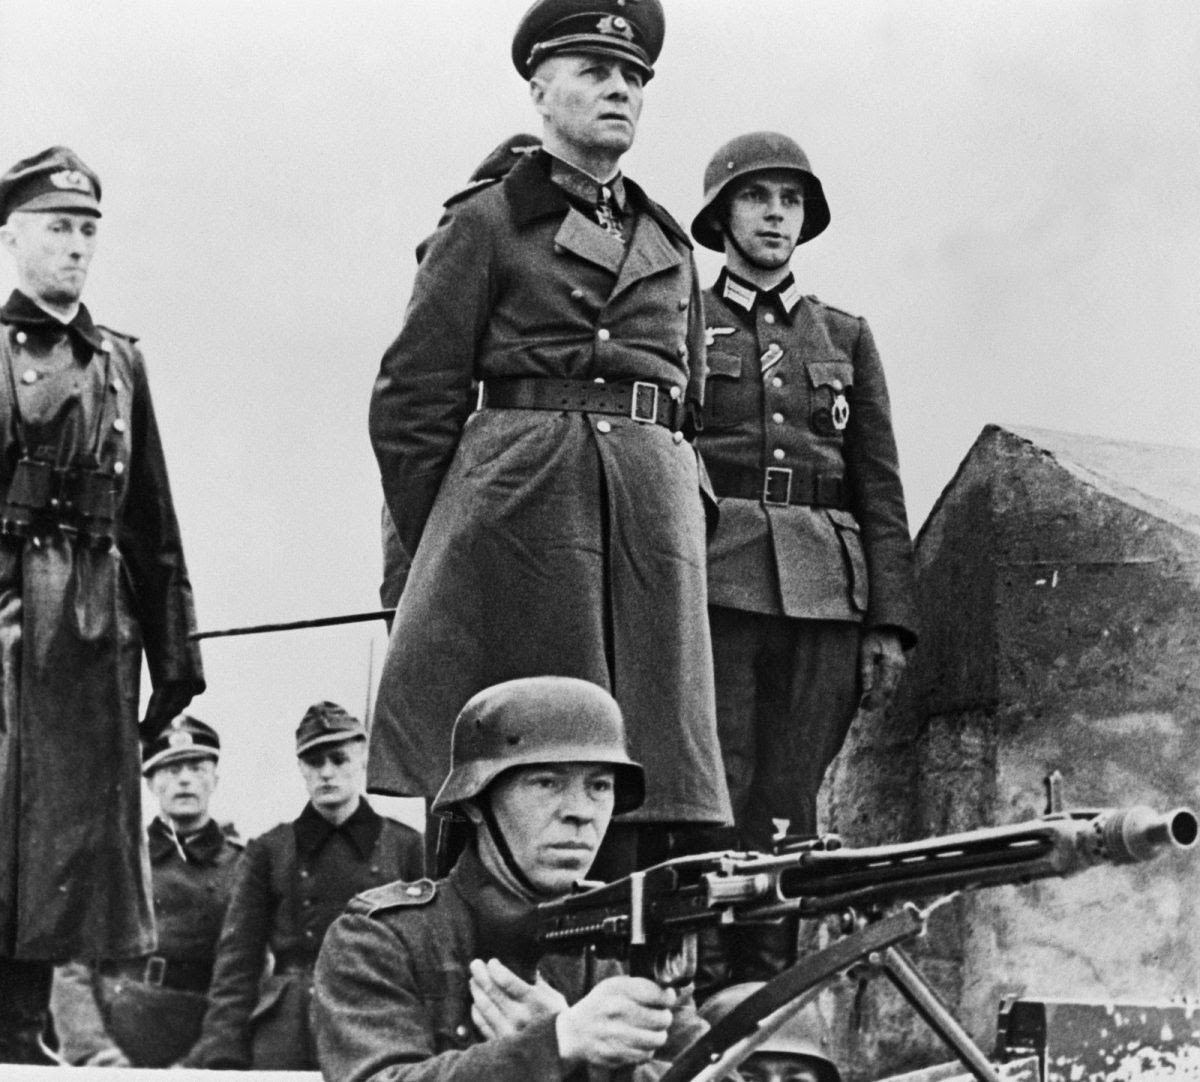 Field Marshall Erwin Rommel inspecting the beach defenses in Normandy, 1944